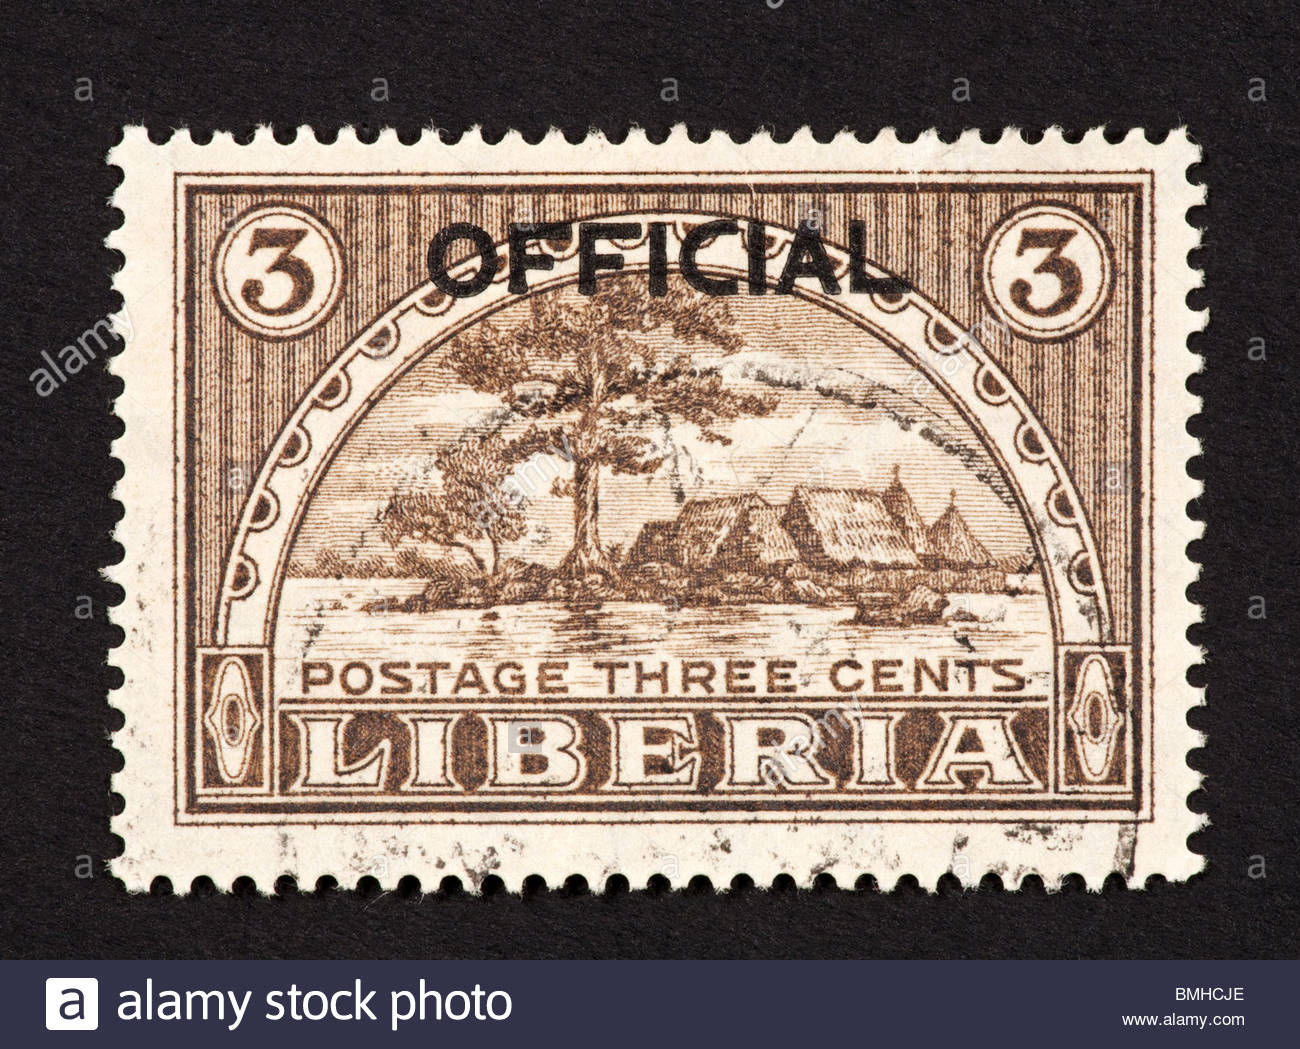 Providence Island Monrovia, Postage stamp from Liberia depicting Providence Island and ...